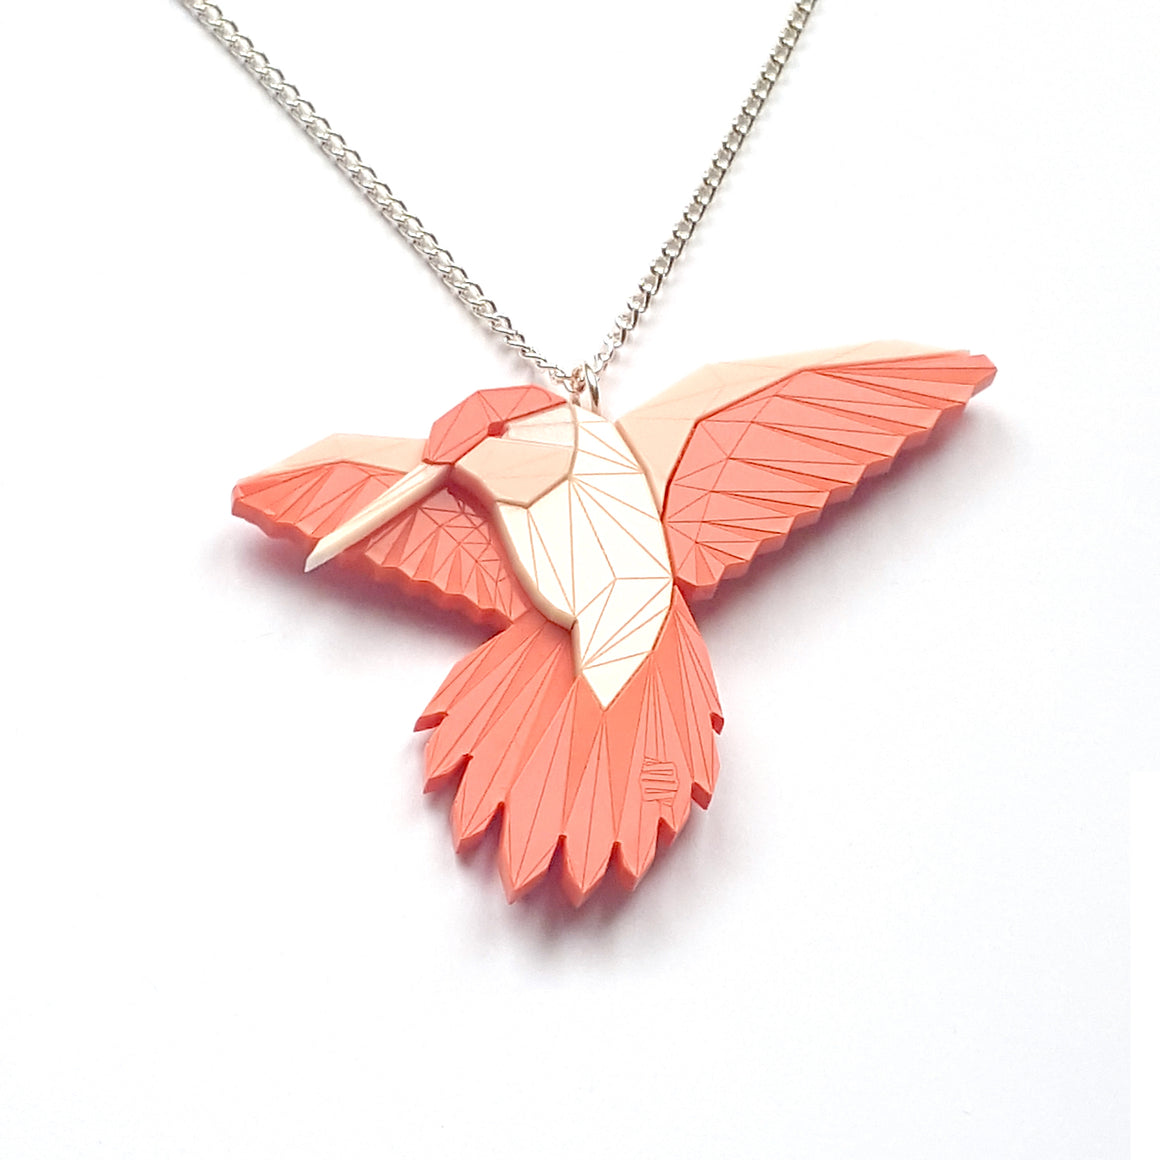 Hummingbird Necklace Albina by Sstutter